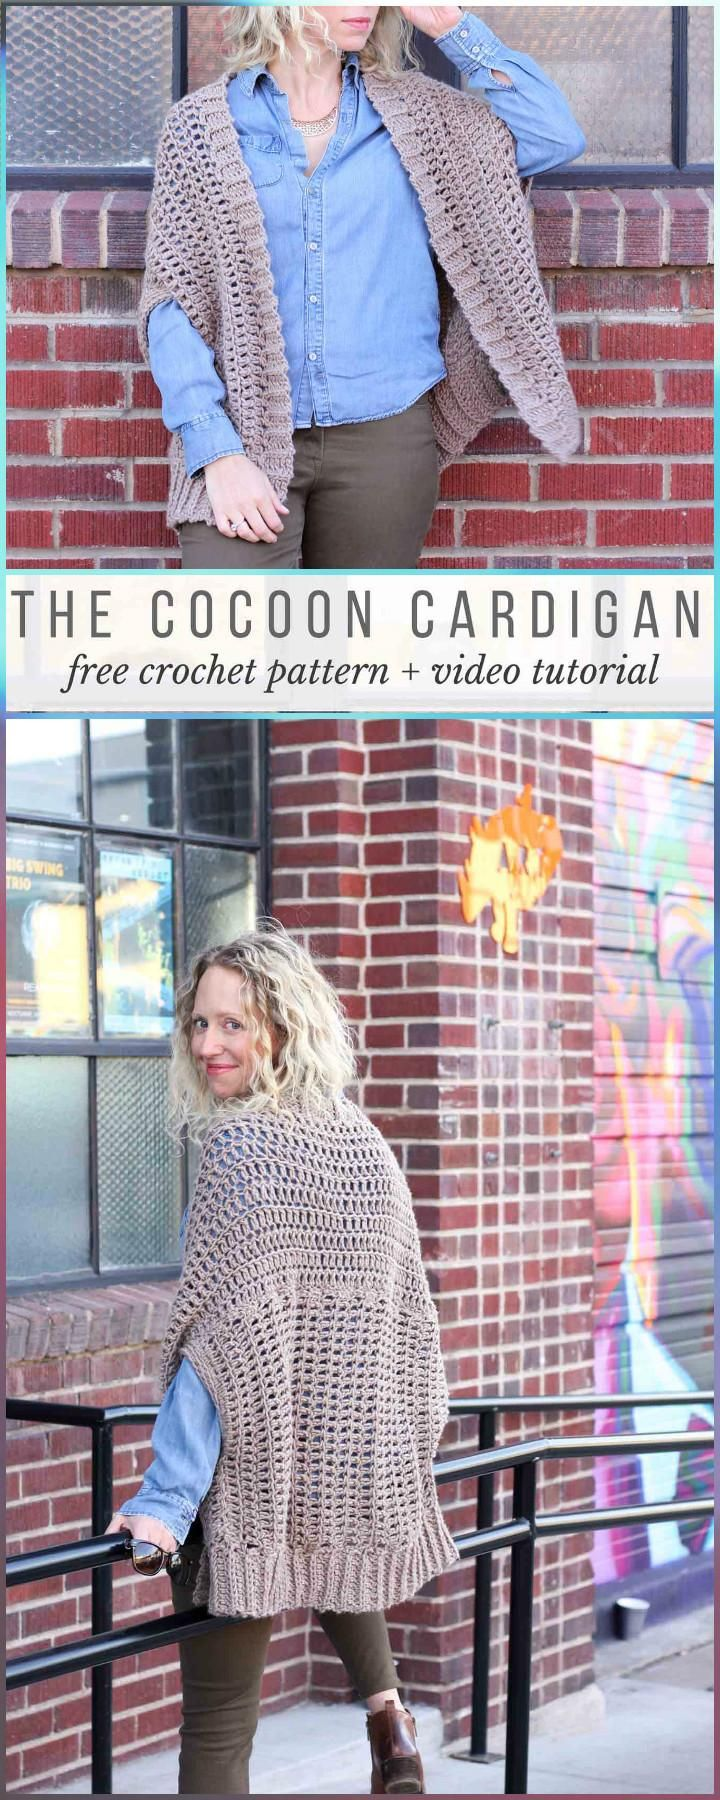 110+ Free Crochet Patterns for Summer and Spring - Page 2 of 12 - DIY & Crafts